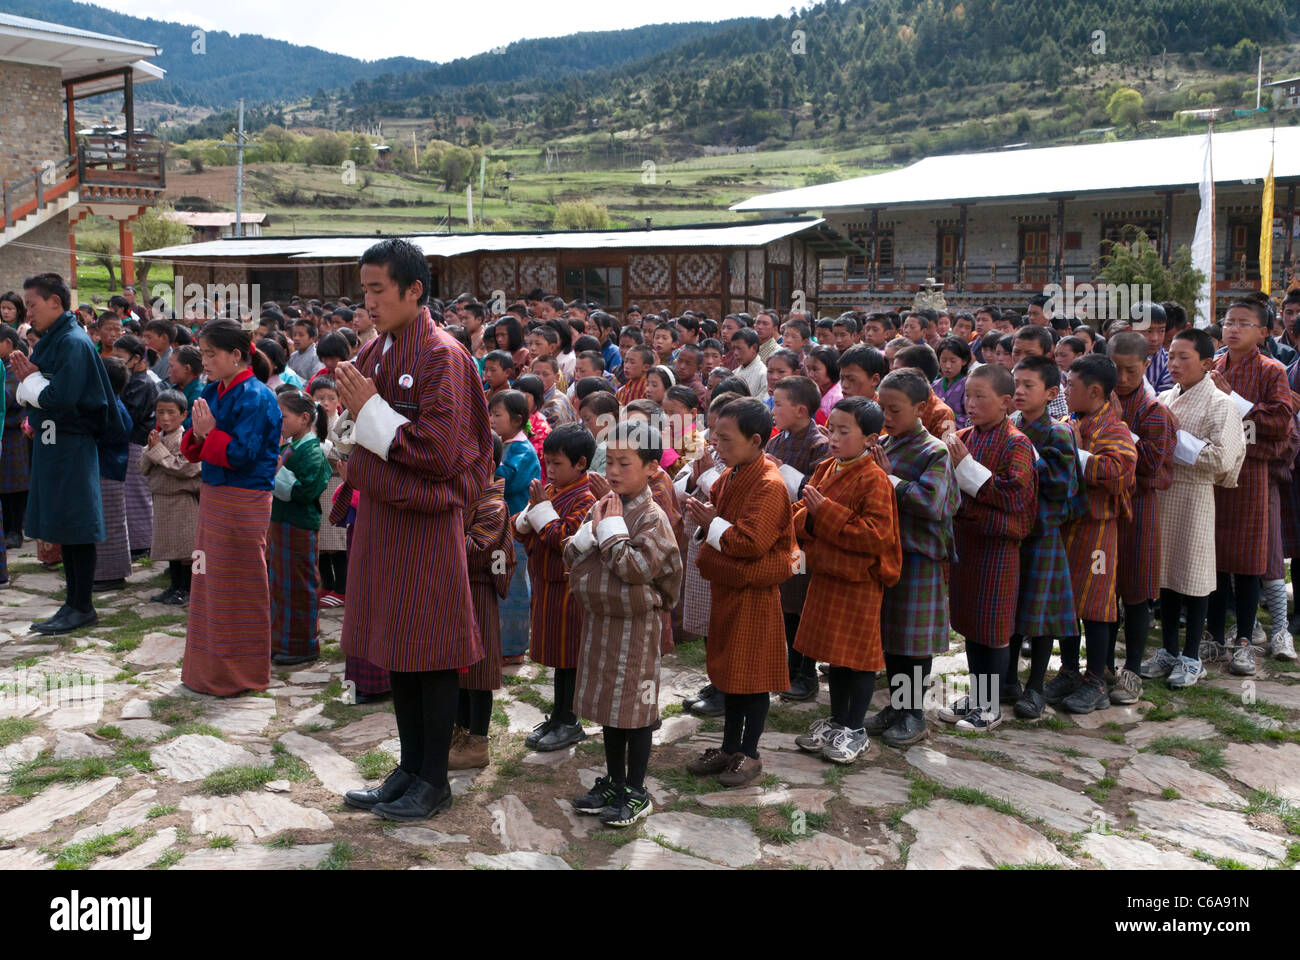 Morning prayer in Ura boarding school courtyard. Bhutan - Stock Image